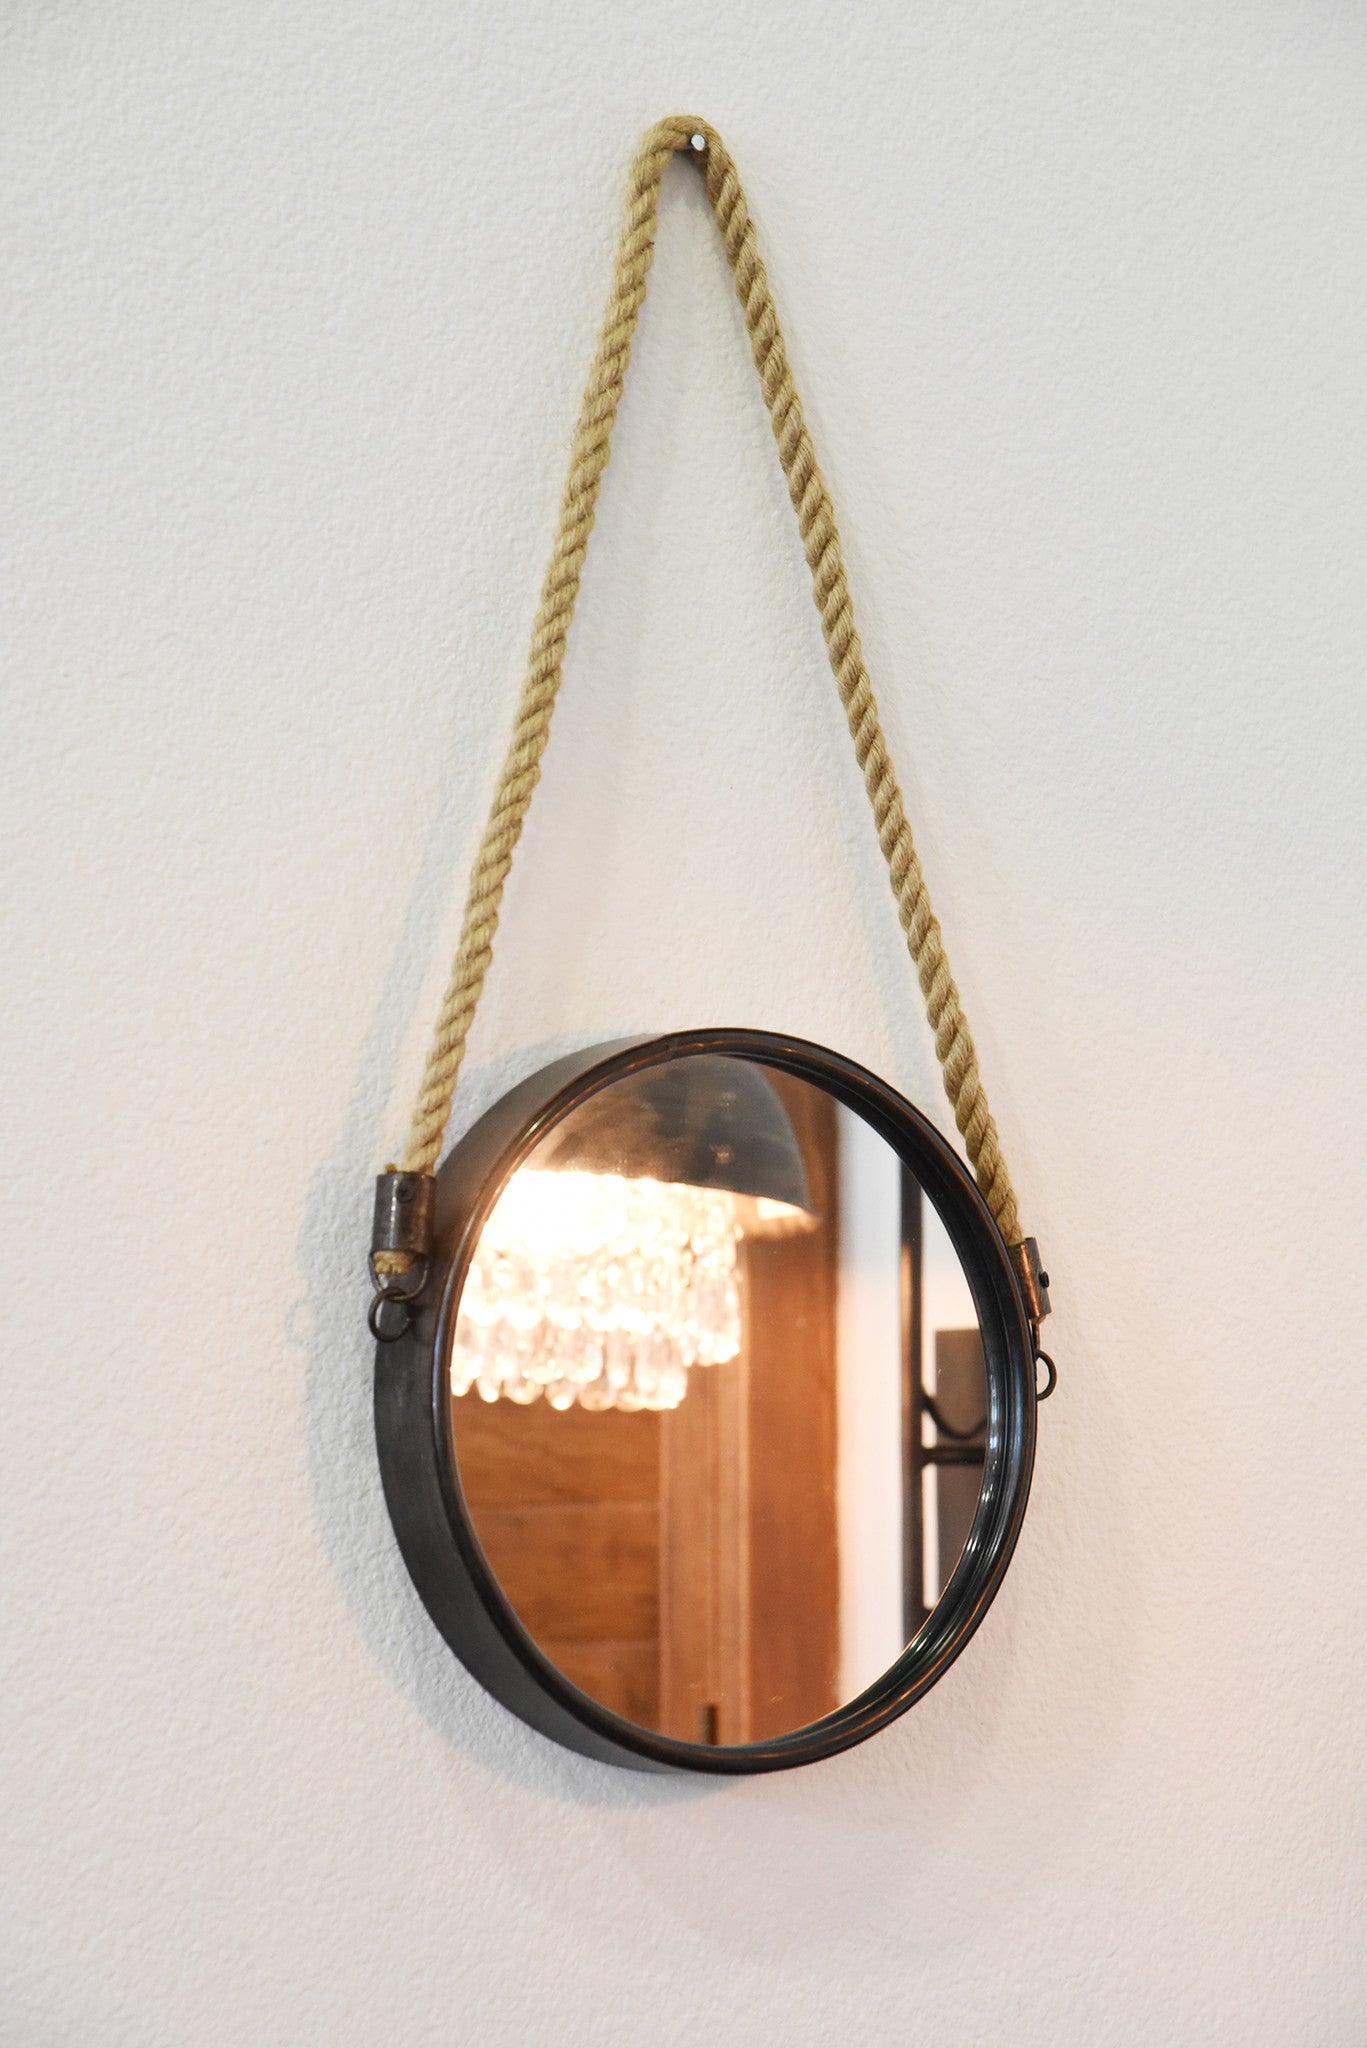 Round Metal Mirror With Rope Part - 47: Round Nautical Hanging Mirrors With Rope